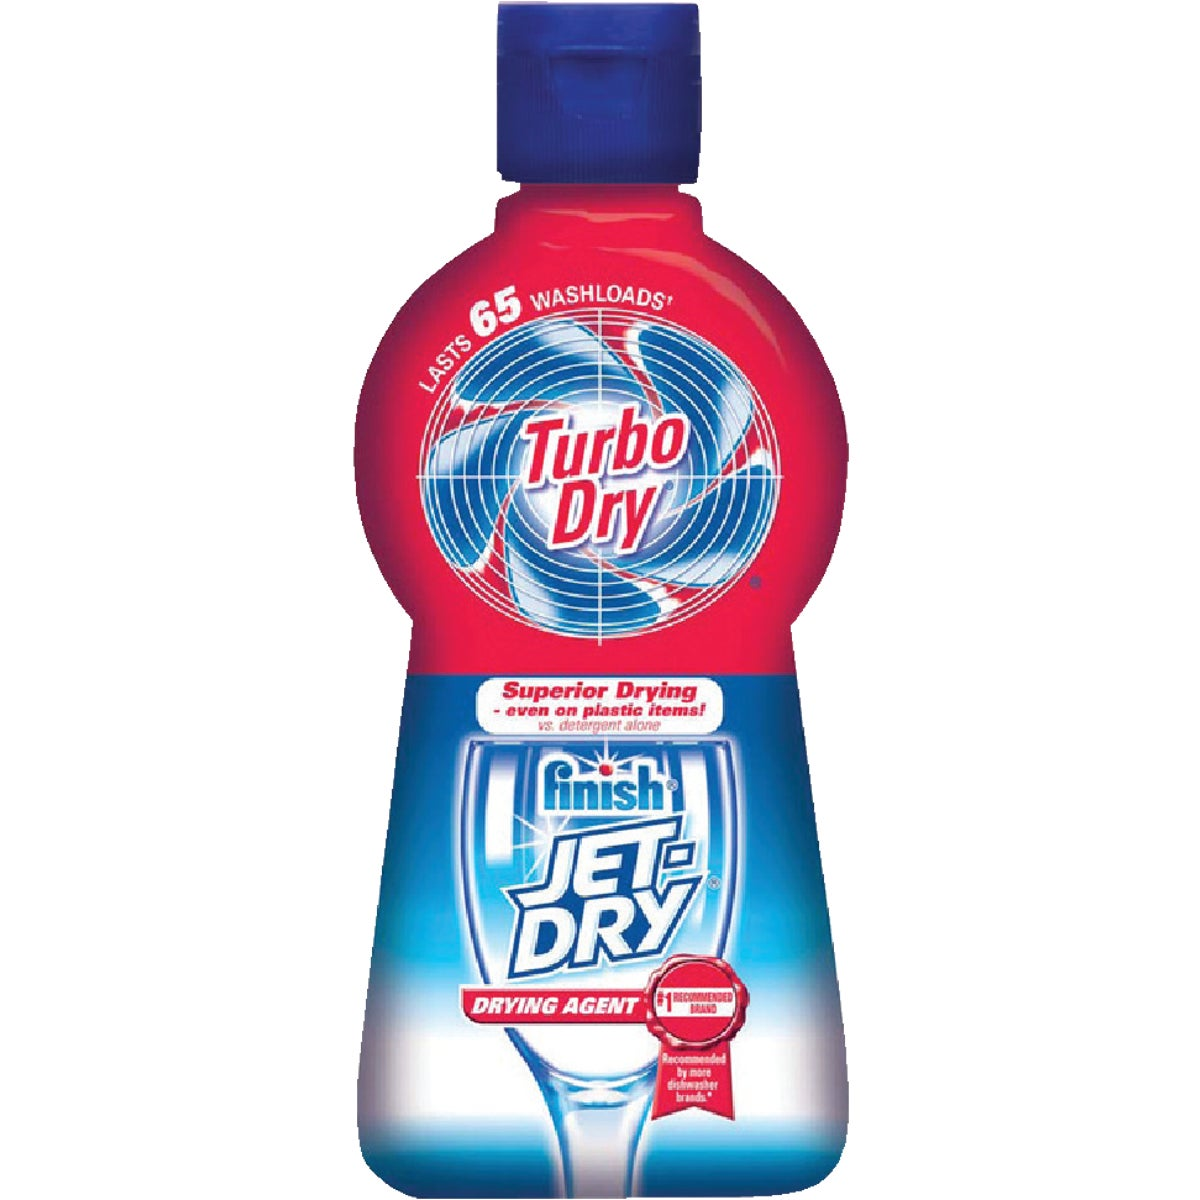 TURBO JET DRY - 5170080312 by Reckitt Benckiser